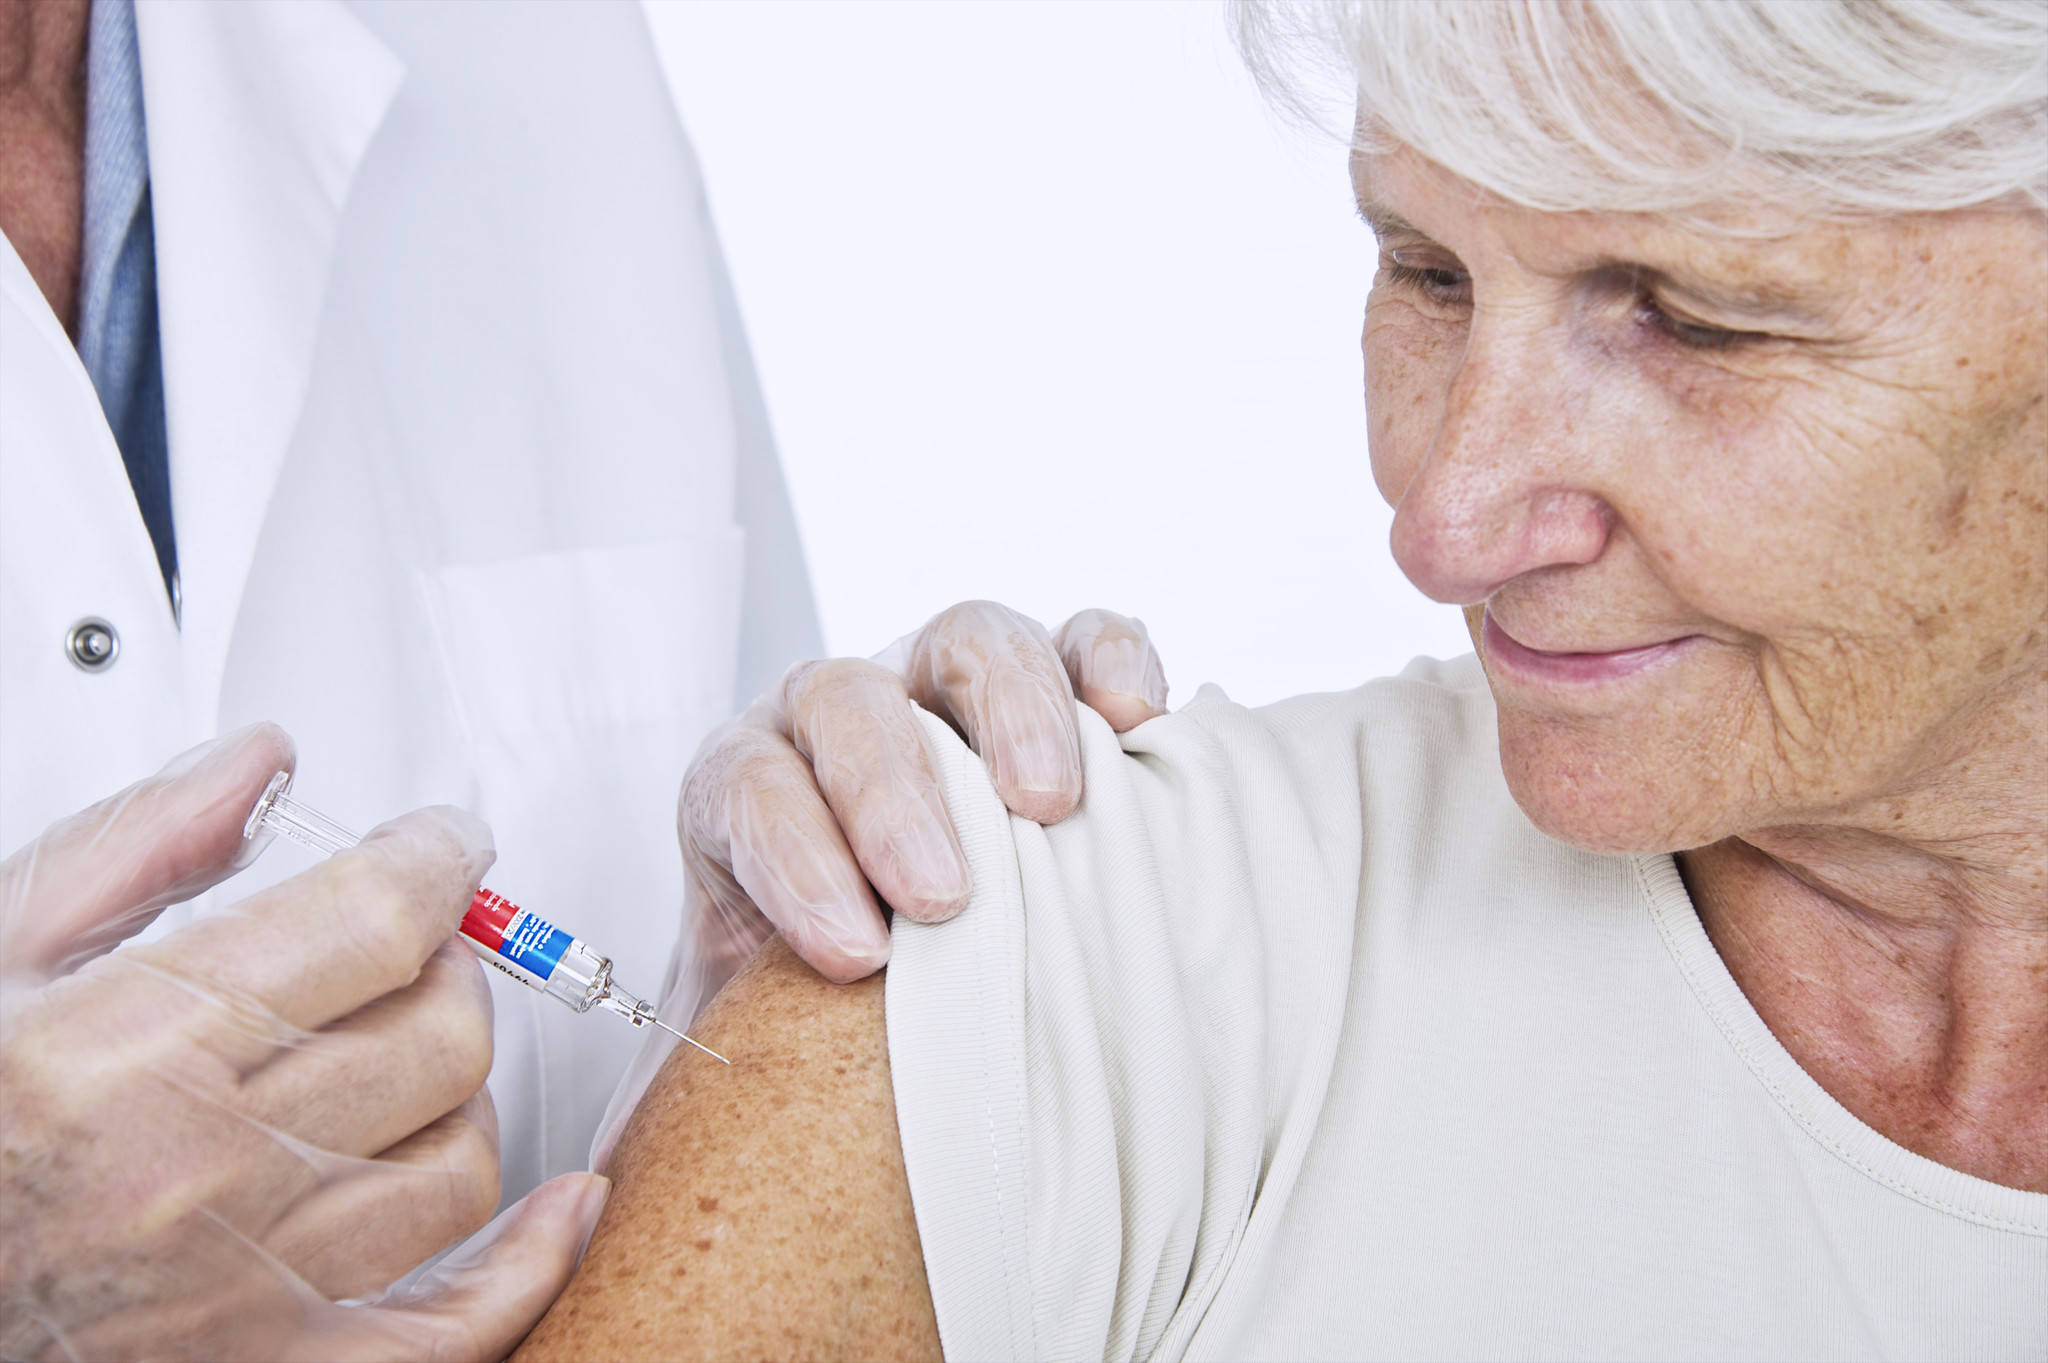 What You Need To Know About The New Shingles Vaccine